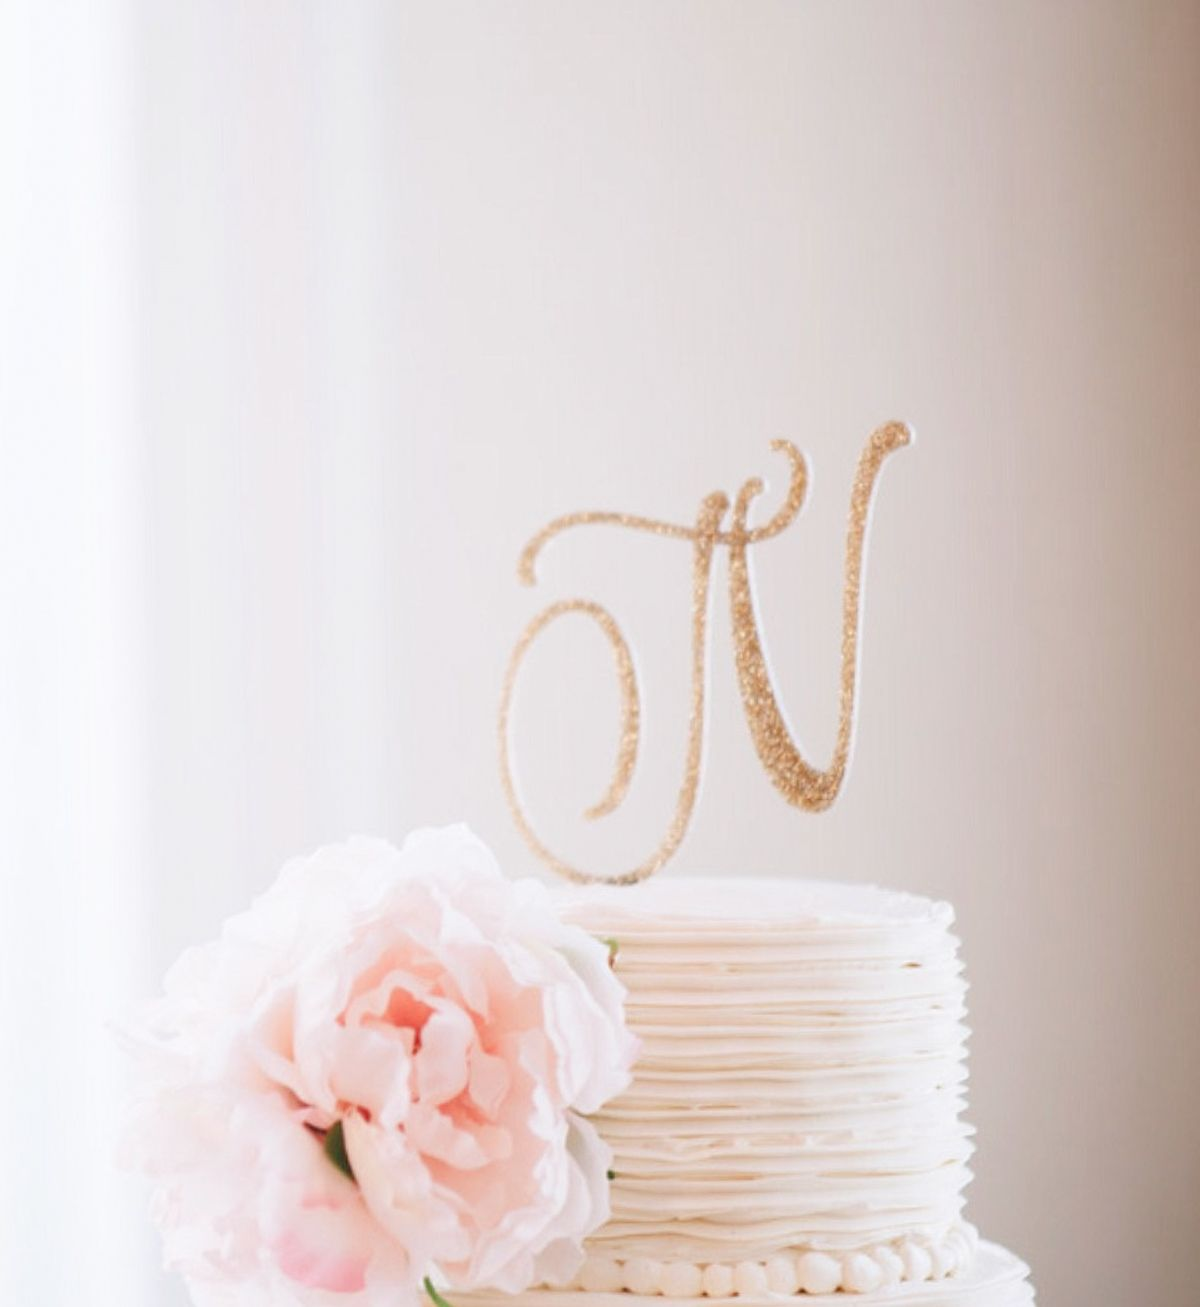 Personalized Letter Wedding Cake Topper in Gold Glitter Acrylic ...